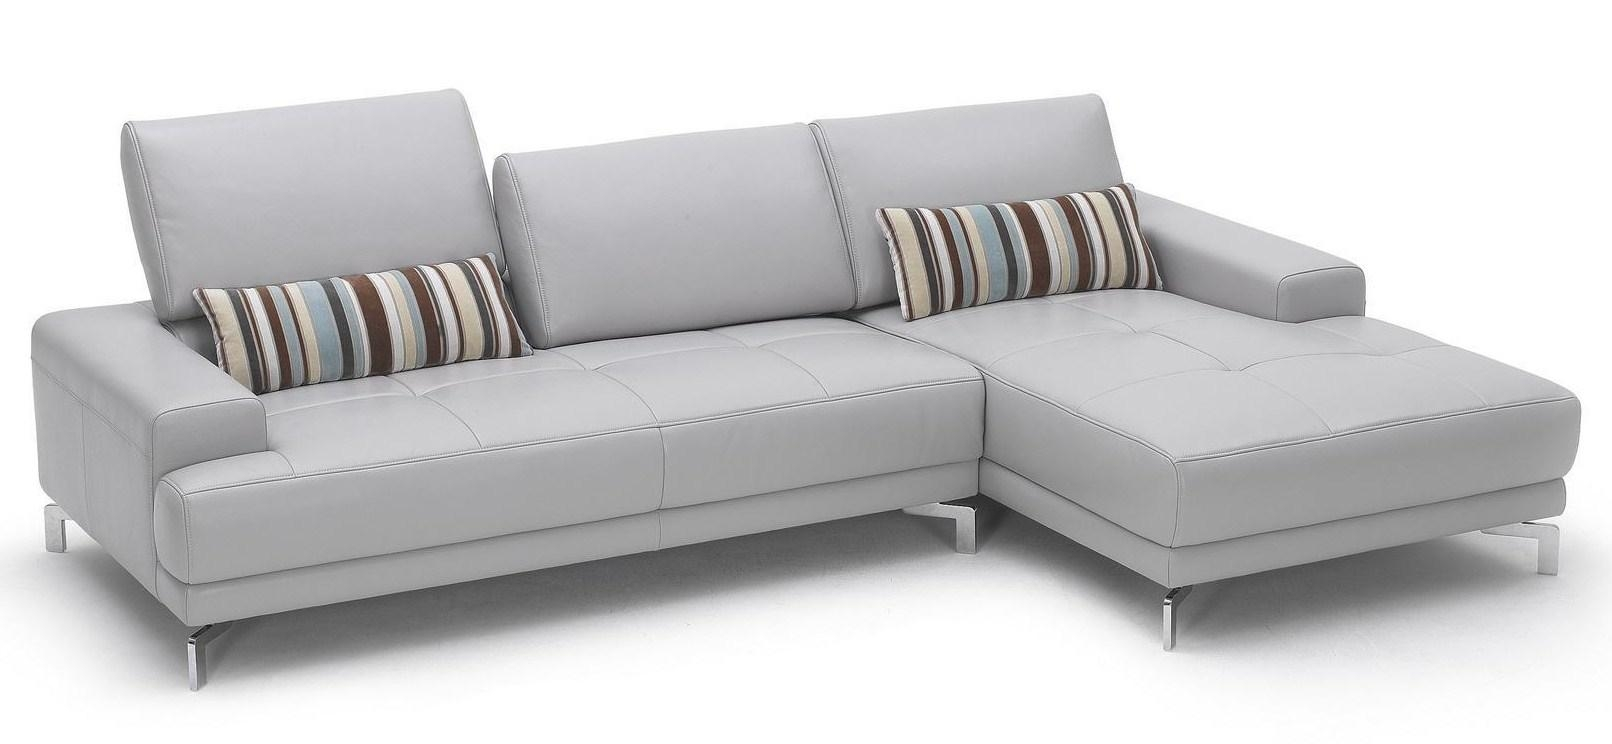 Modern Sofas Sofa Los Angeles For Small Spaces | Deseosol For Small Modern Sofas (View 16 of 20)